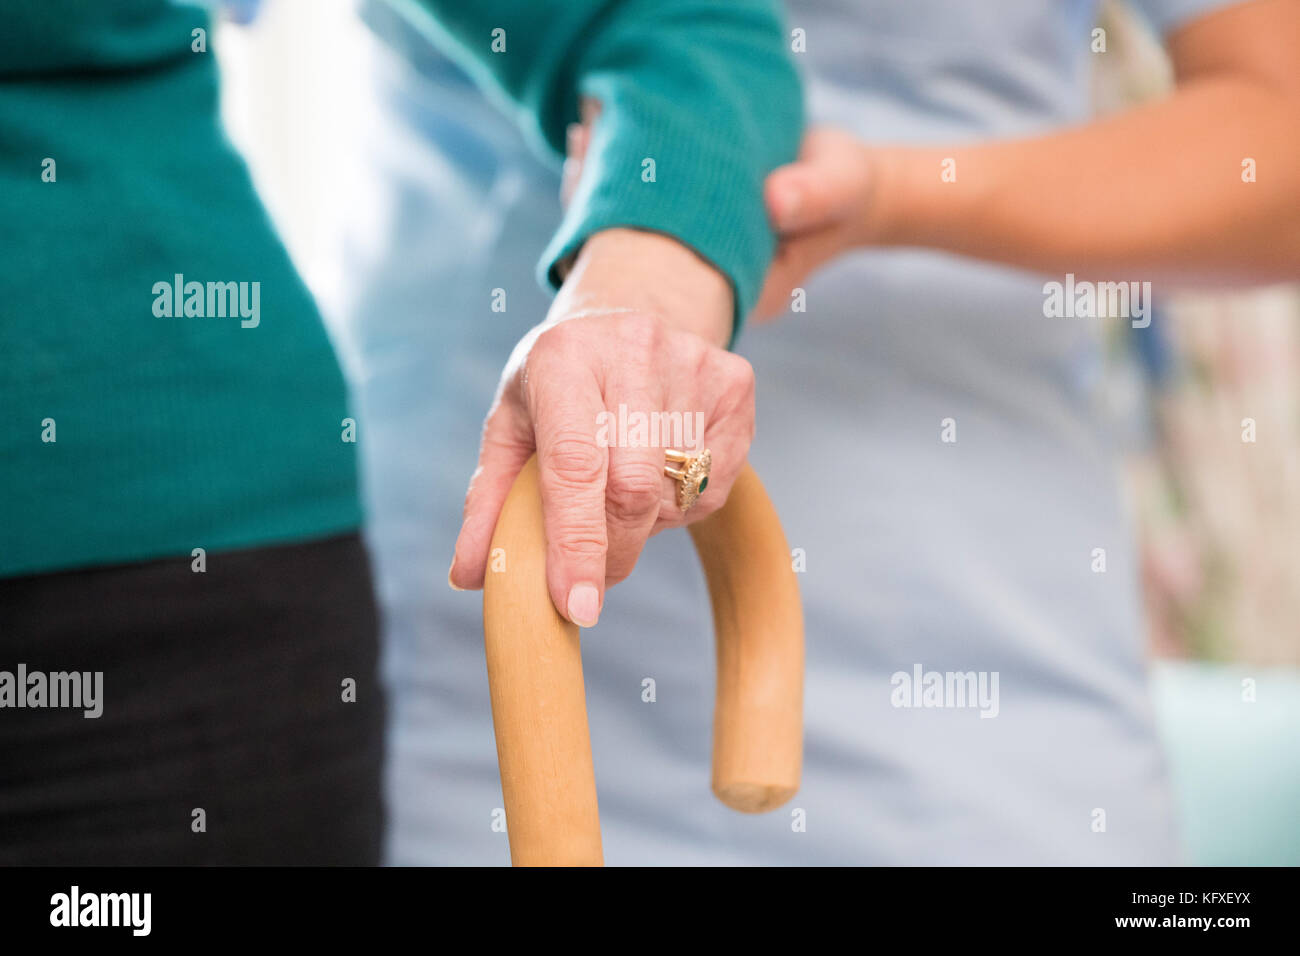 Senior Woman's Hands On Walking Stick With Care Worker In Background - Stock Image